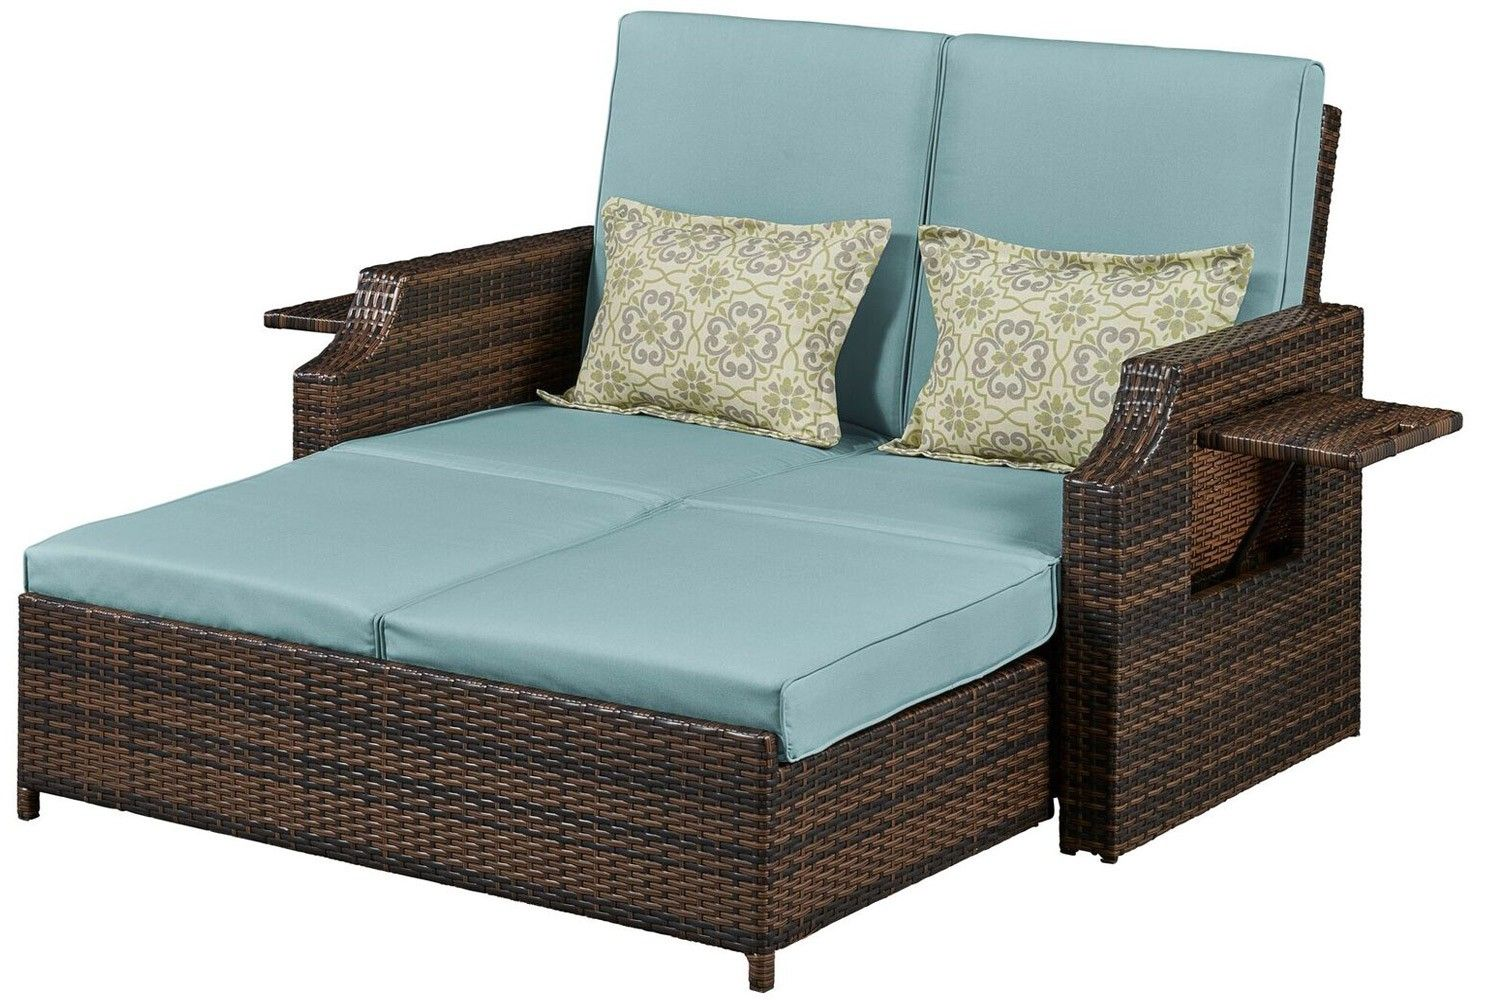 Outdoor Futon Sofa Bed Bermuda The Outdoor Futon Sofa Bed Bermudaavailable In Sea Living Room Decor Pillows Blue Pillows Decorative Outdoor Furniture Cushions